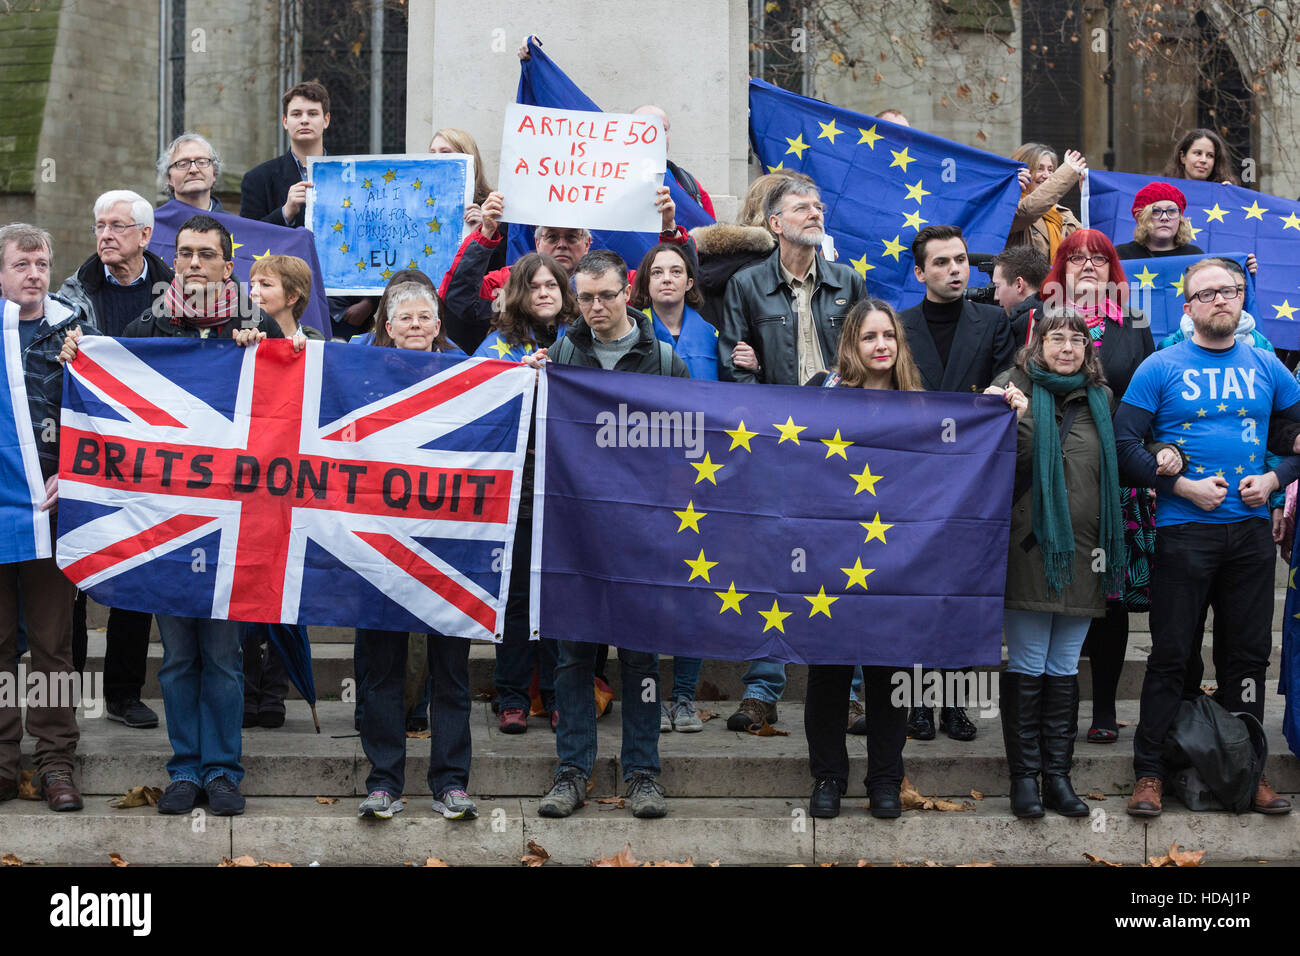 London, UK, 10 December 2016. Pro-EU/Anti-Brexit protesters gathered opposite the Houses of Parliament on Human - Stock Image